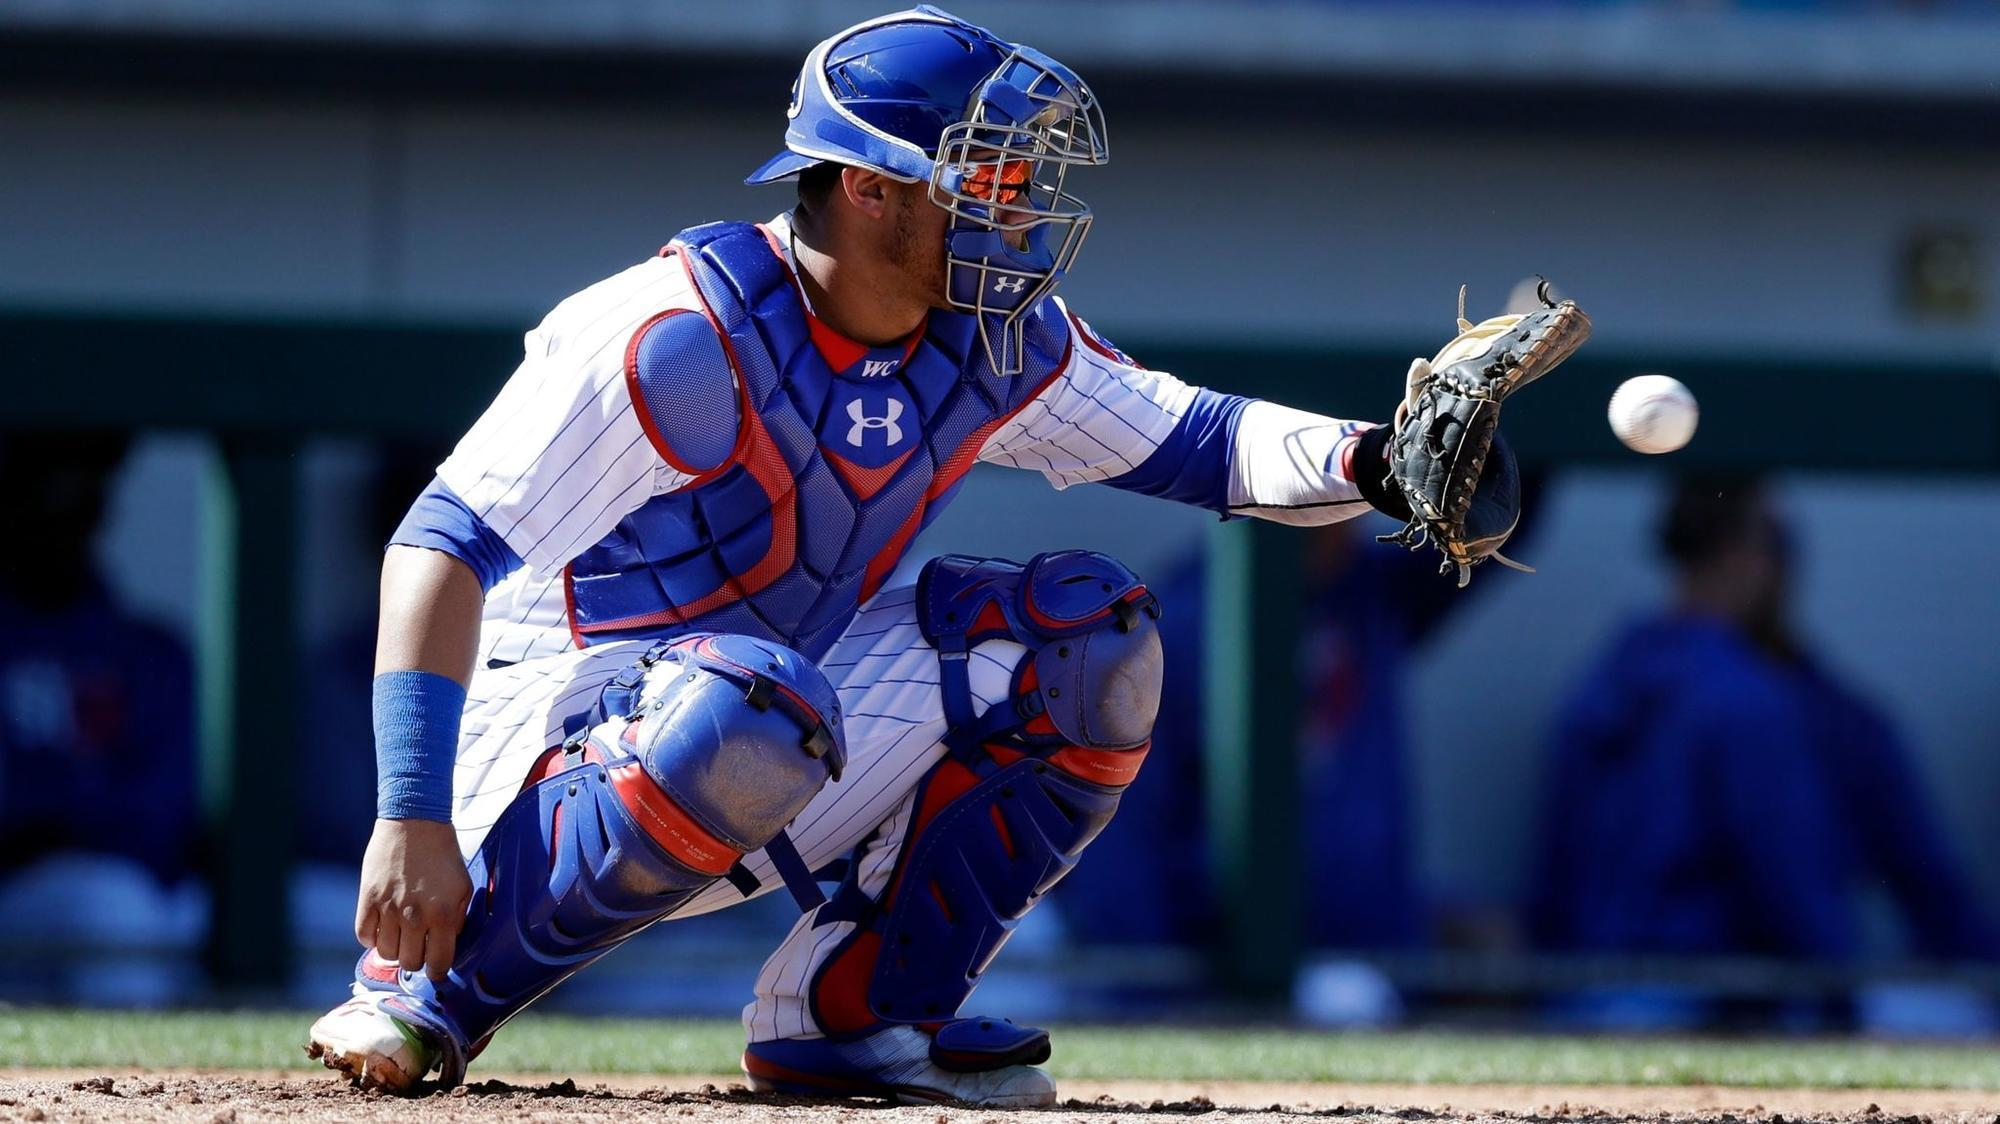 Willson Contreras working to improve pitch framing by refining his ...